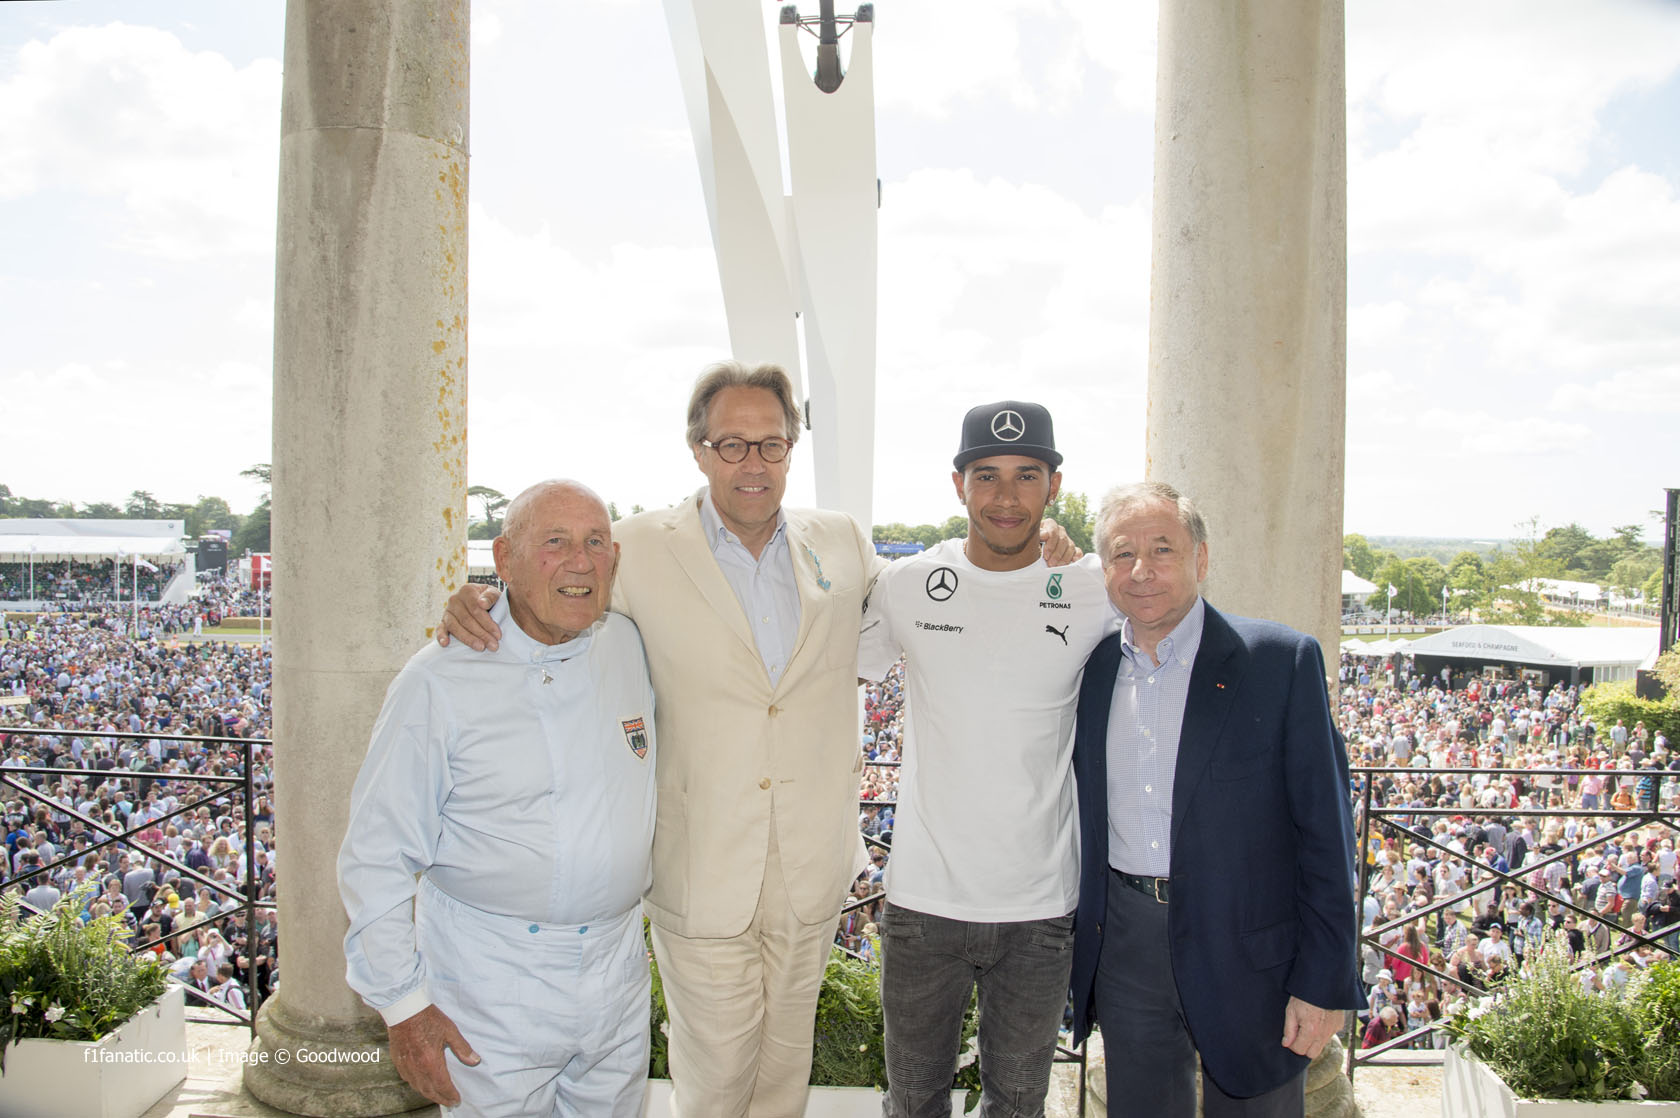 Stirling Moss, Lord March, Lewis Hamilton, Jean Todt, Goodwood Festival of Speed, 2014